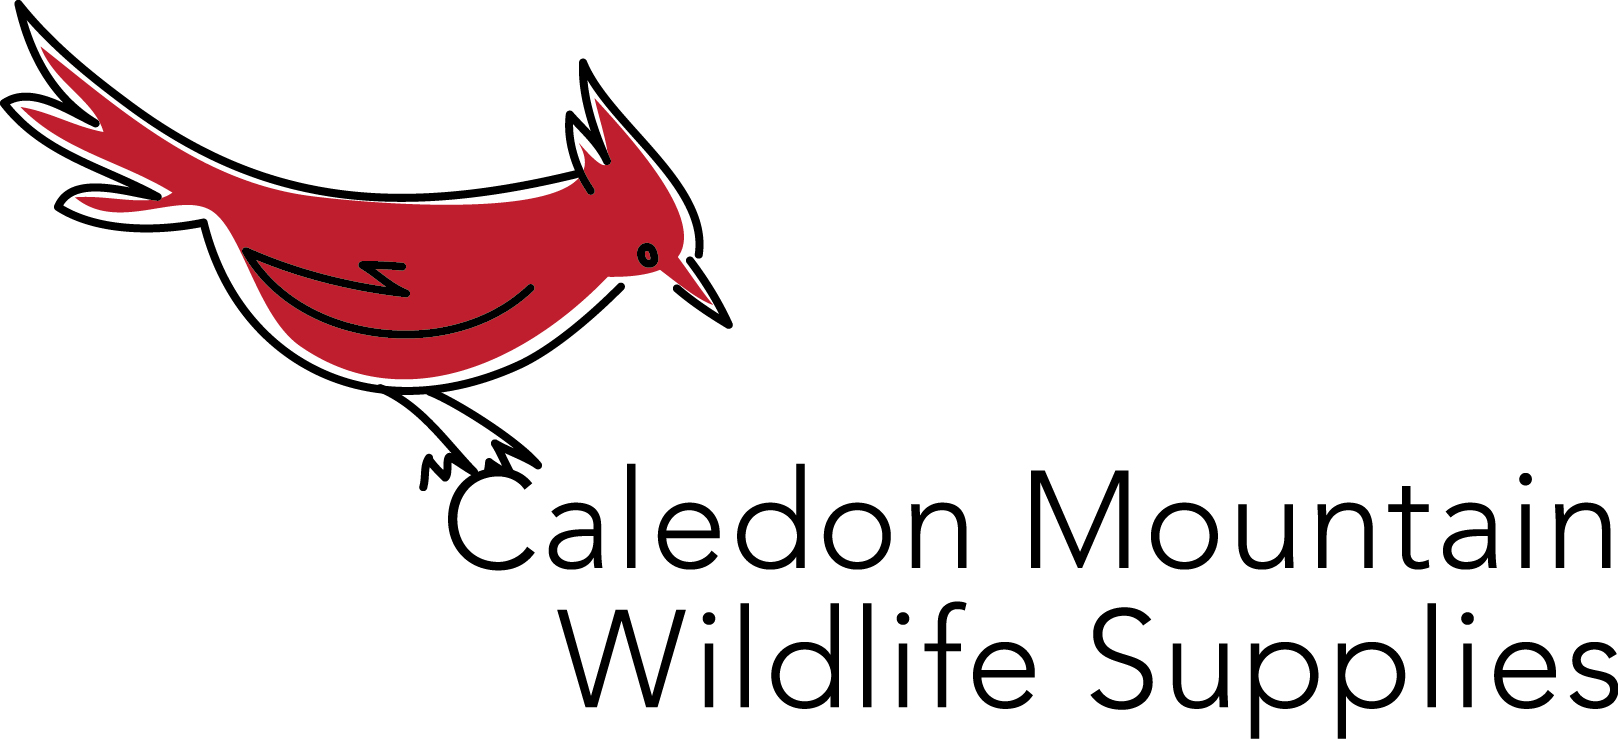 Caledon Mountain Wildlife Supplies- Bird, Dog and Cat Supplies